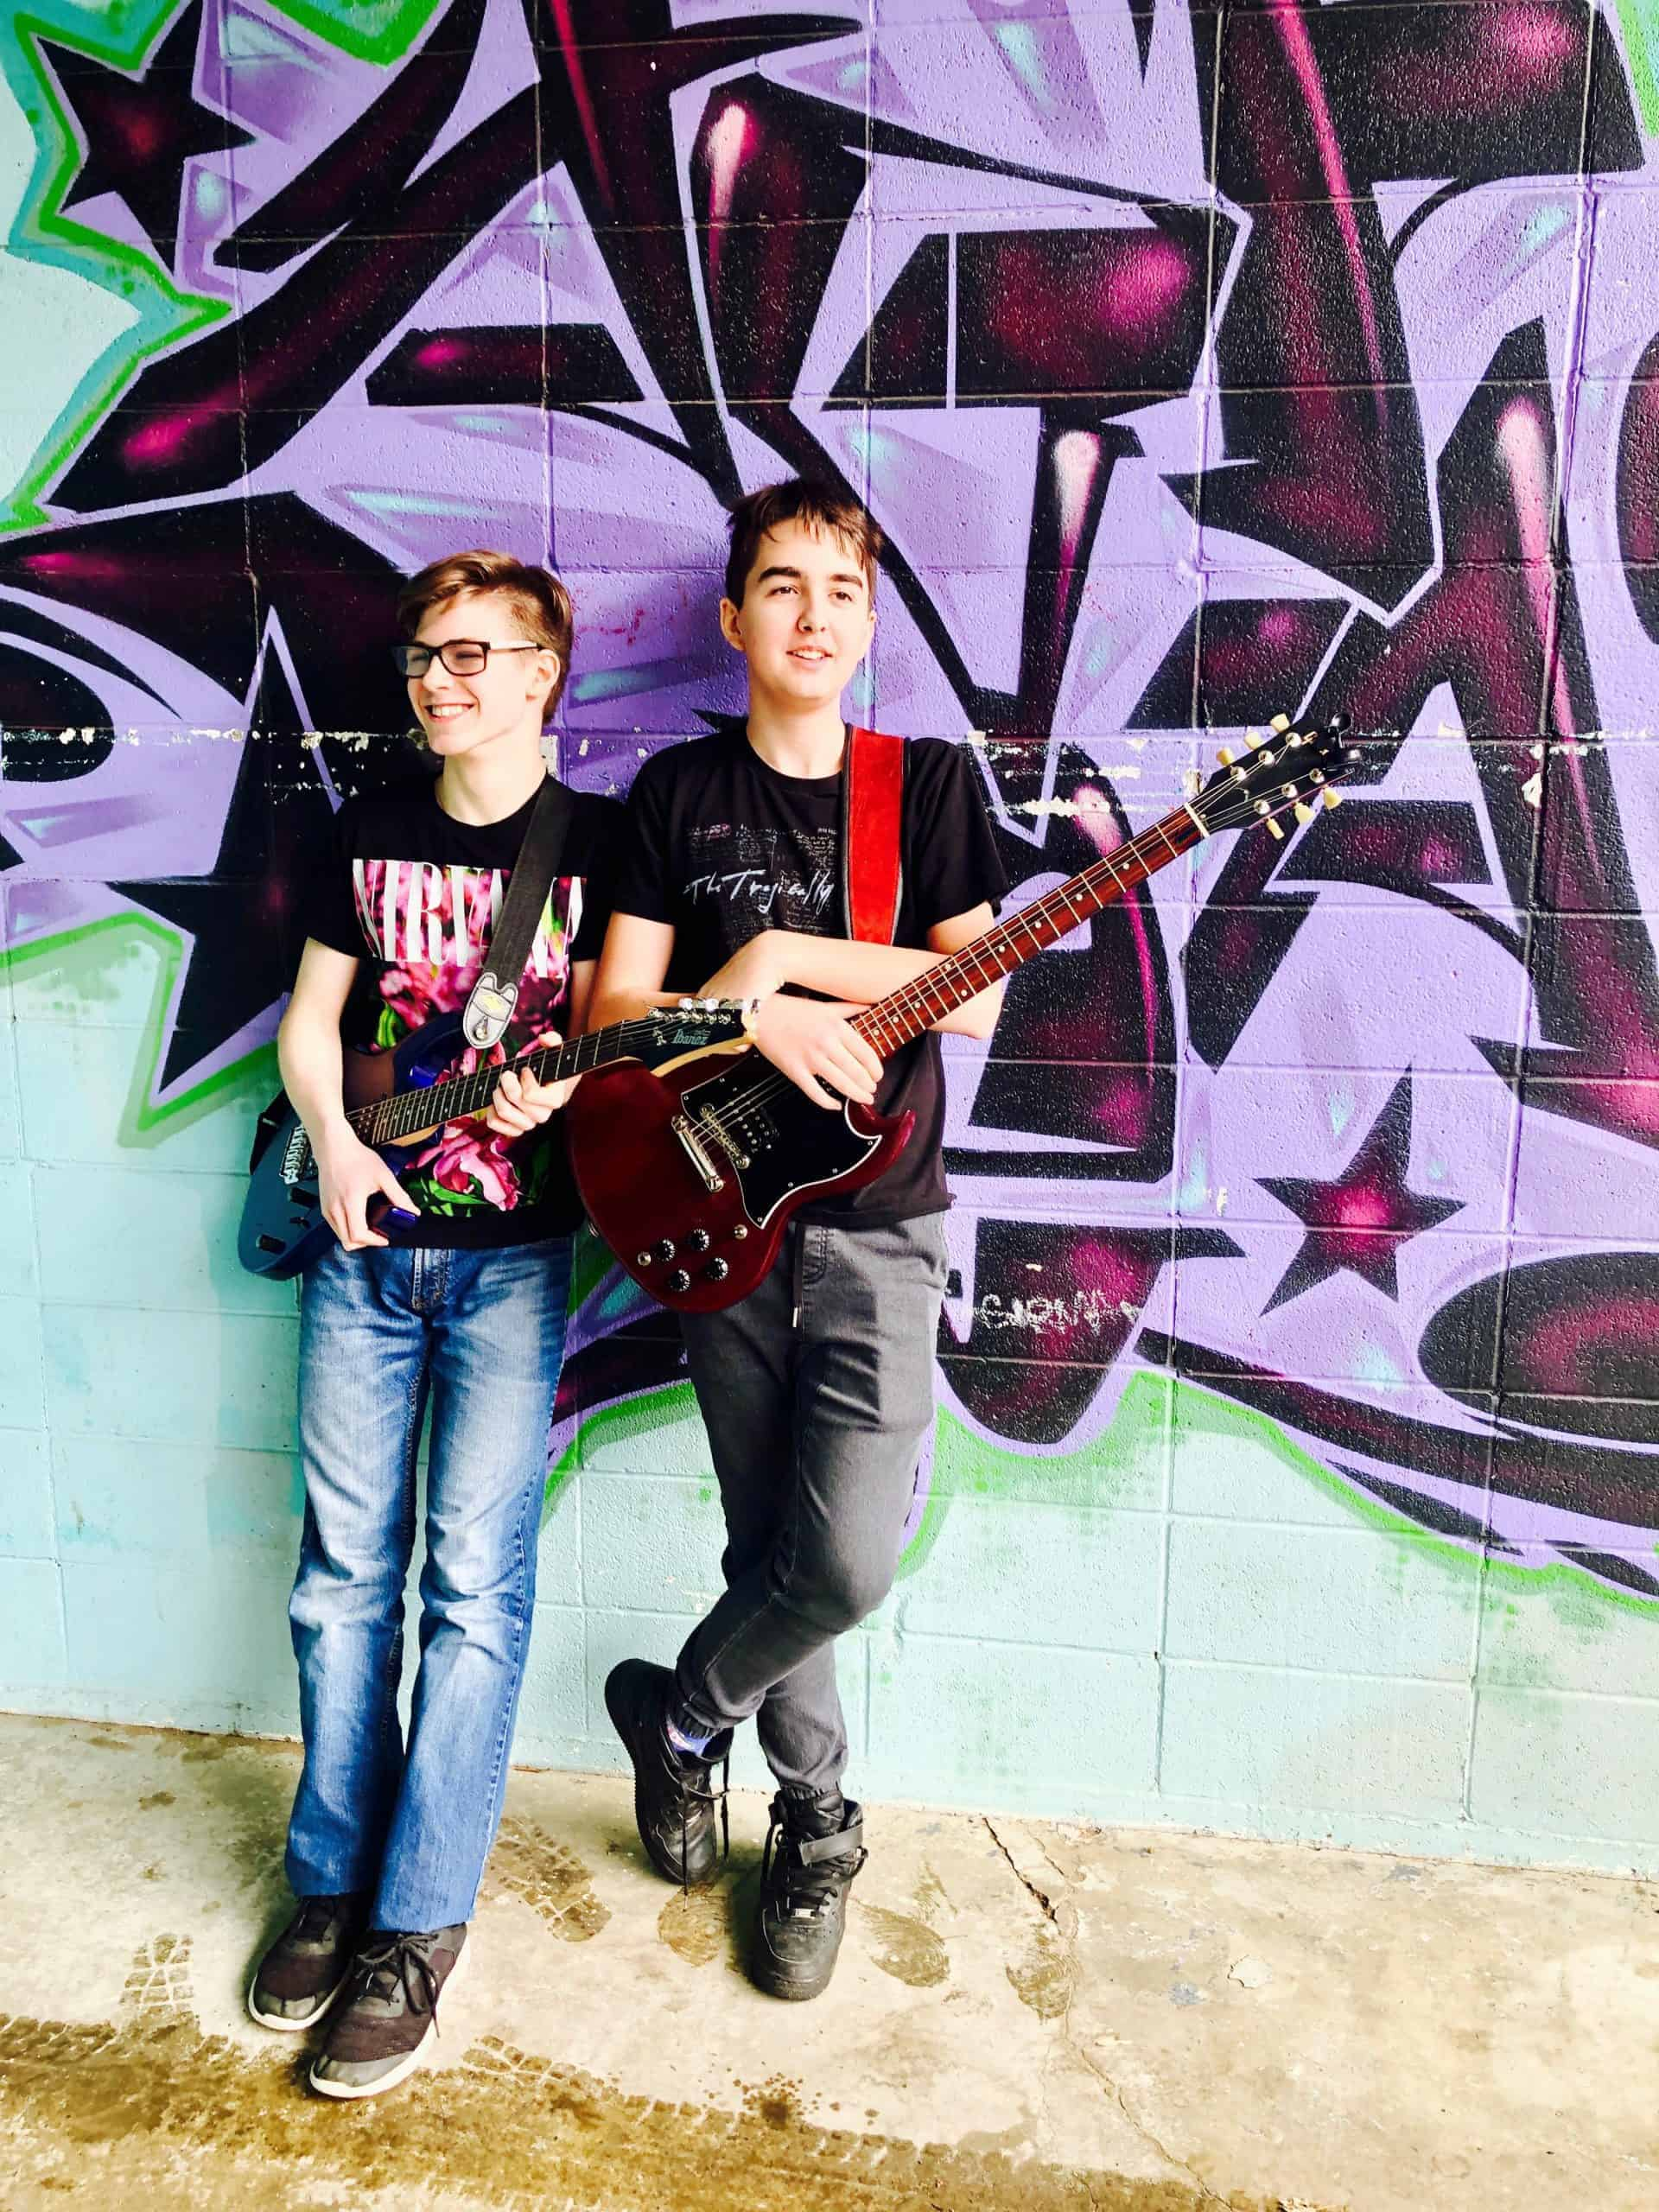 Pacer, a rock band at Backbeat - the place for rock bands and music lessons